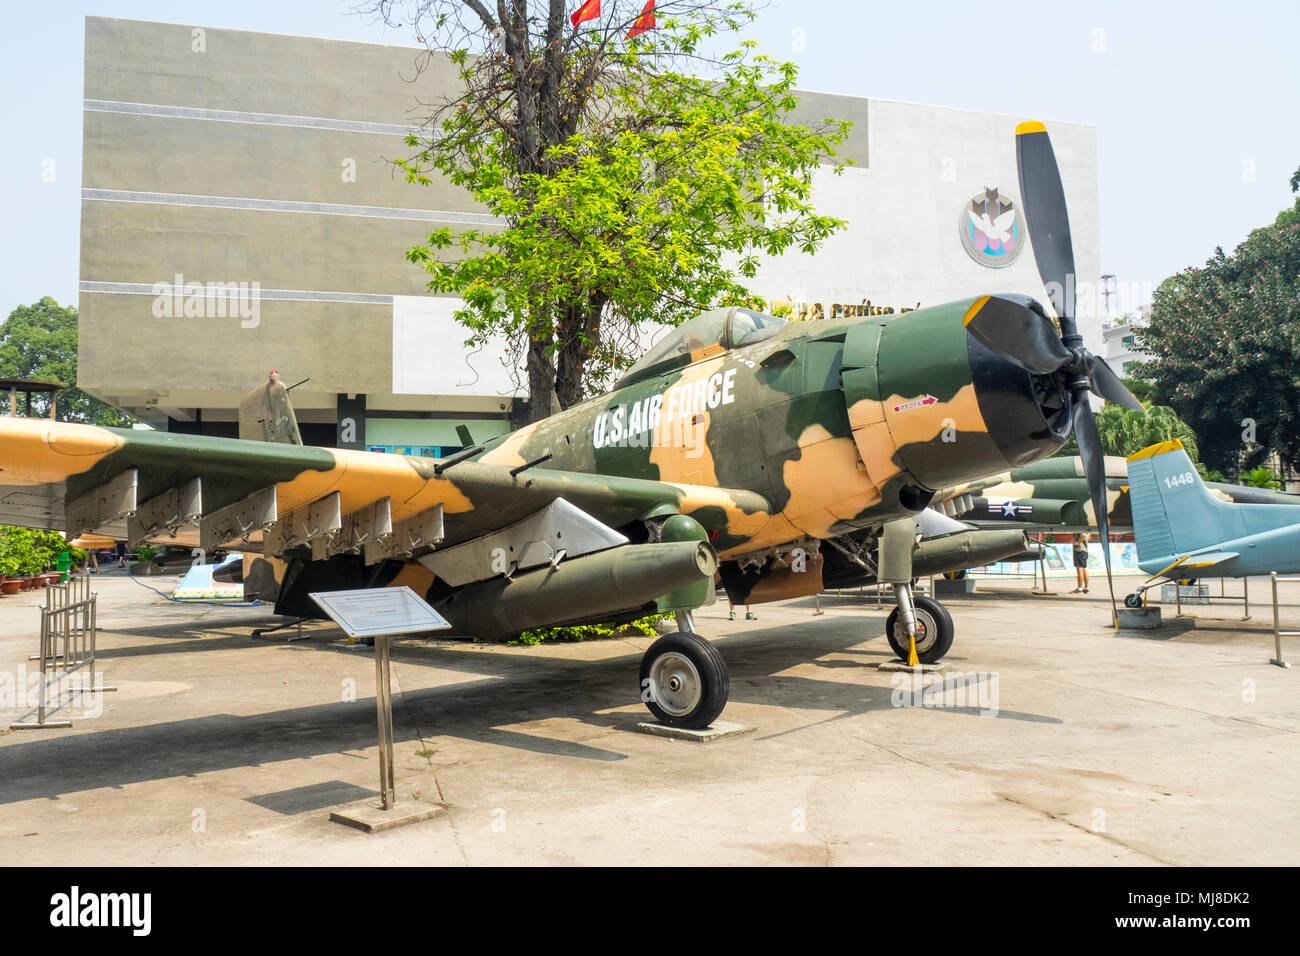 US Air Force McDonnell Douglas A-1 Skyraider plane from the Vietnam War on display at the War Remnants Museum, Ho Chi Minh City, Vietnam. - Stock Image